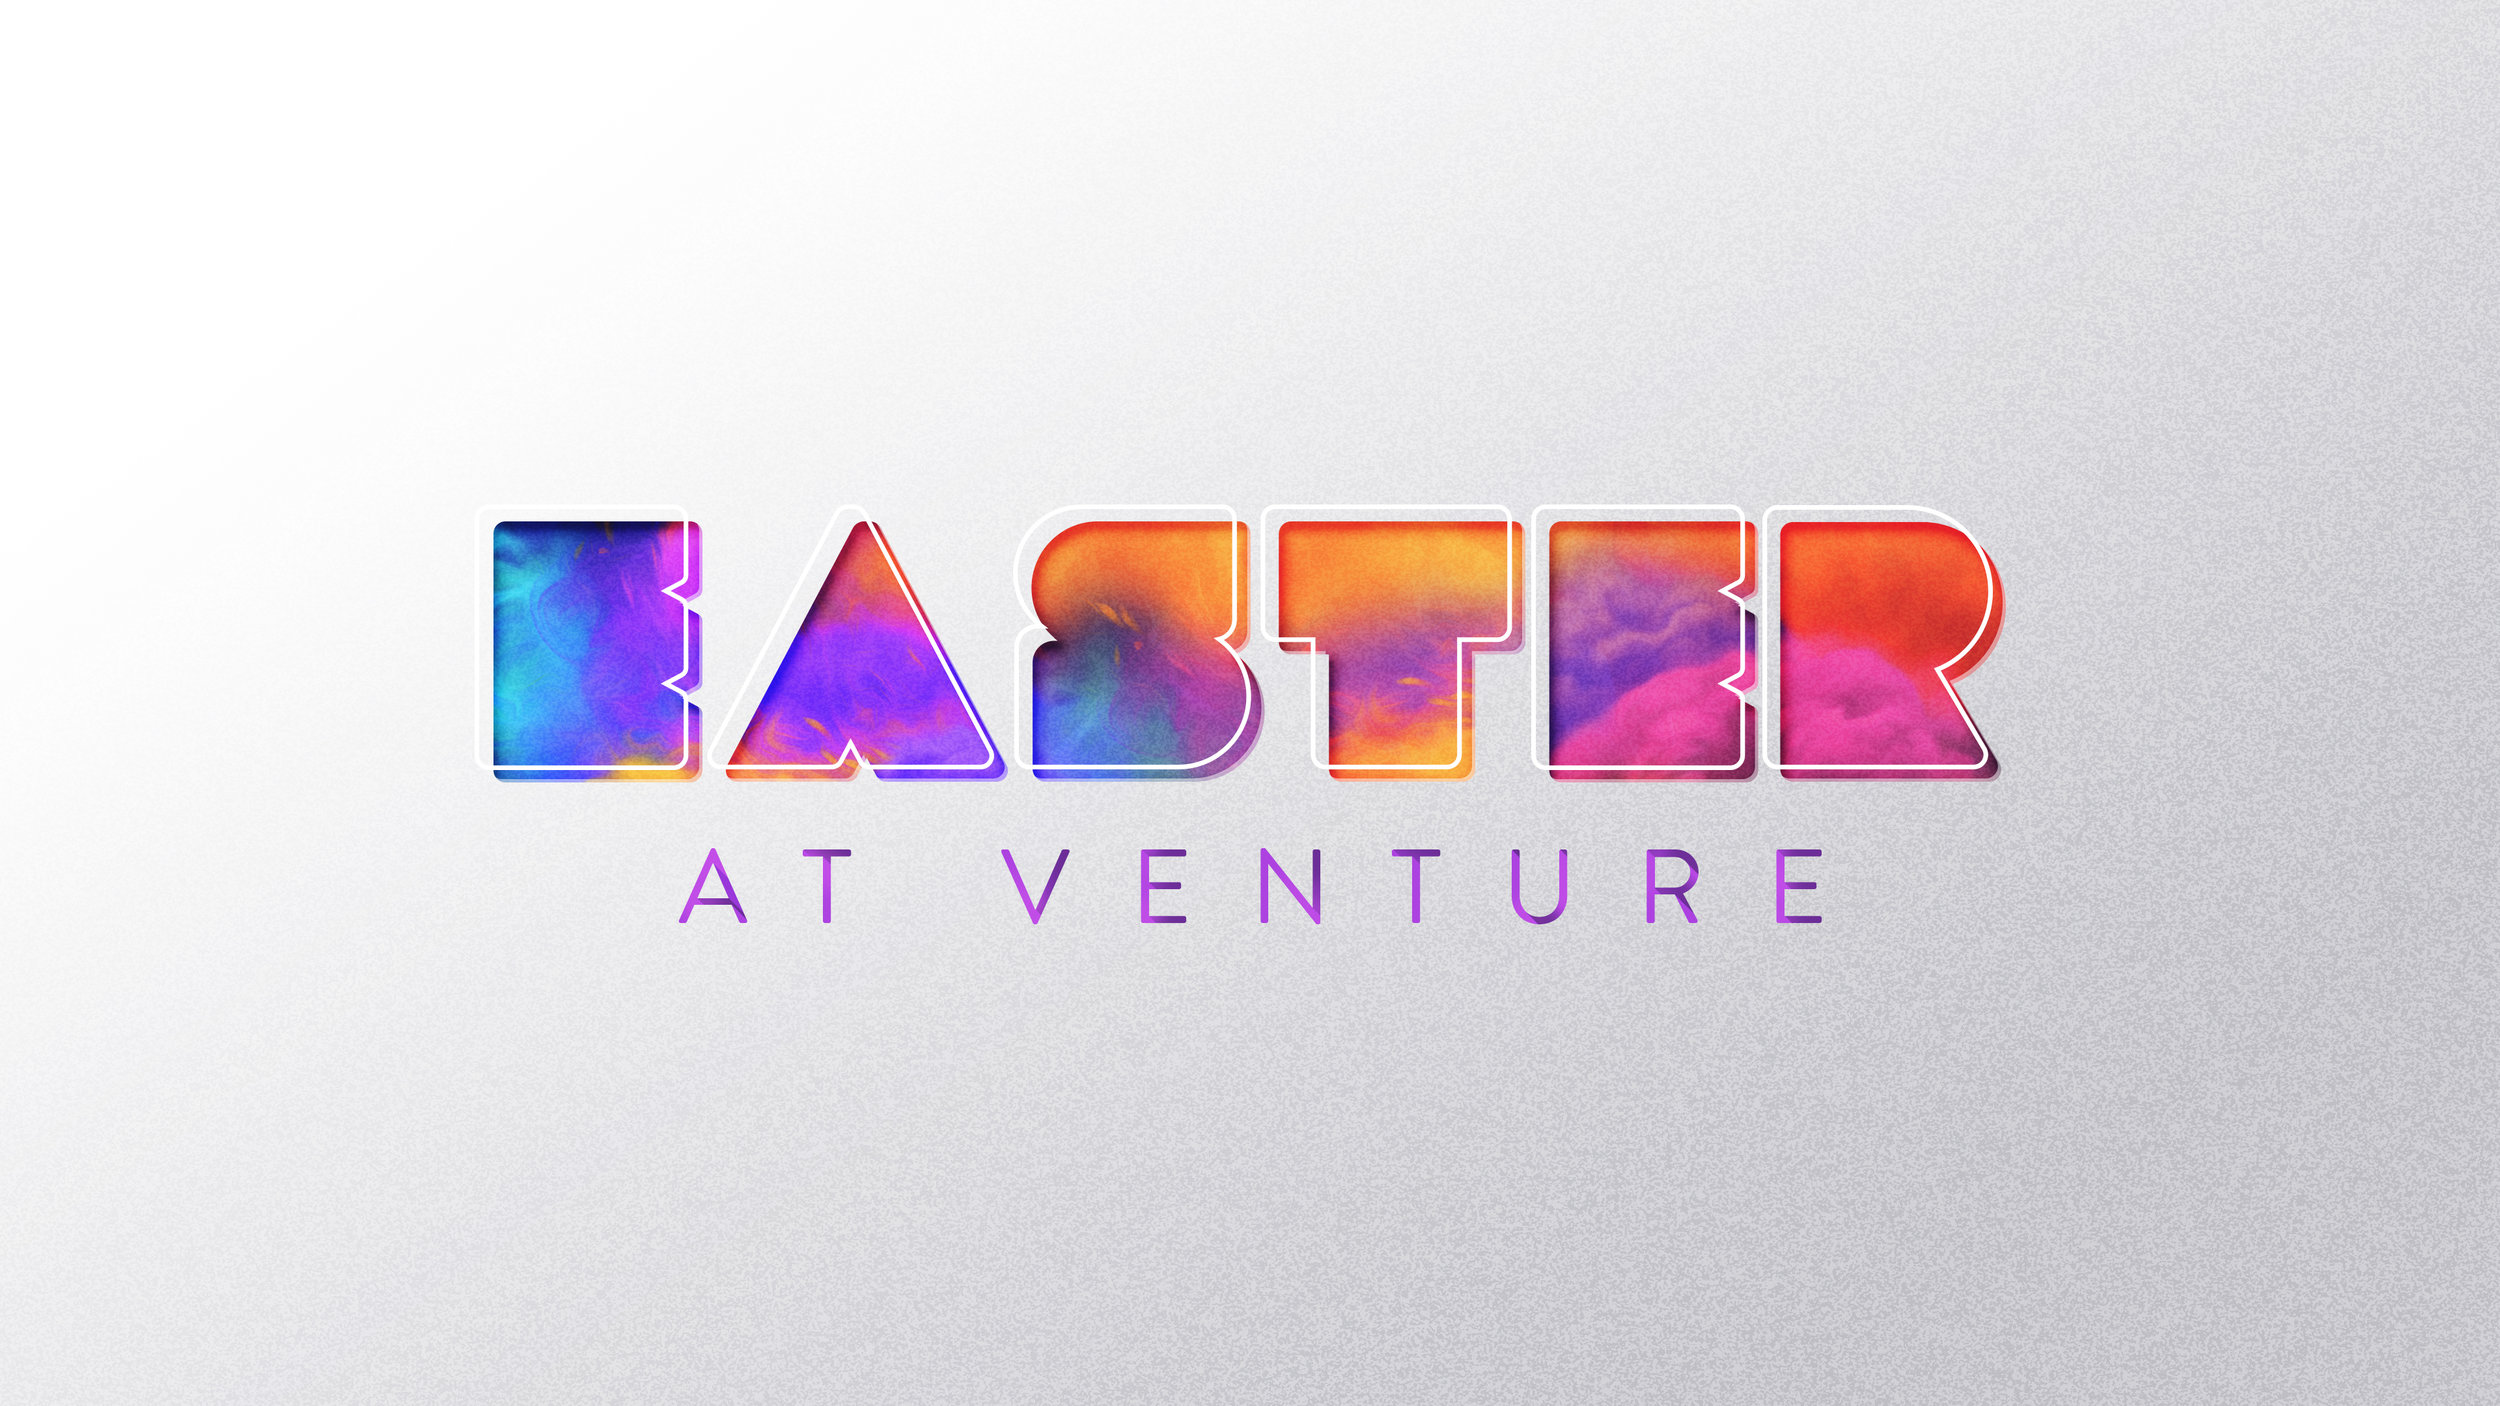 Easter at Venture 2019